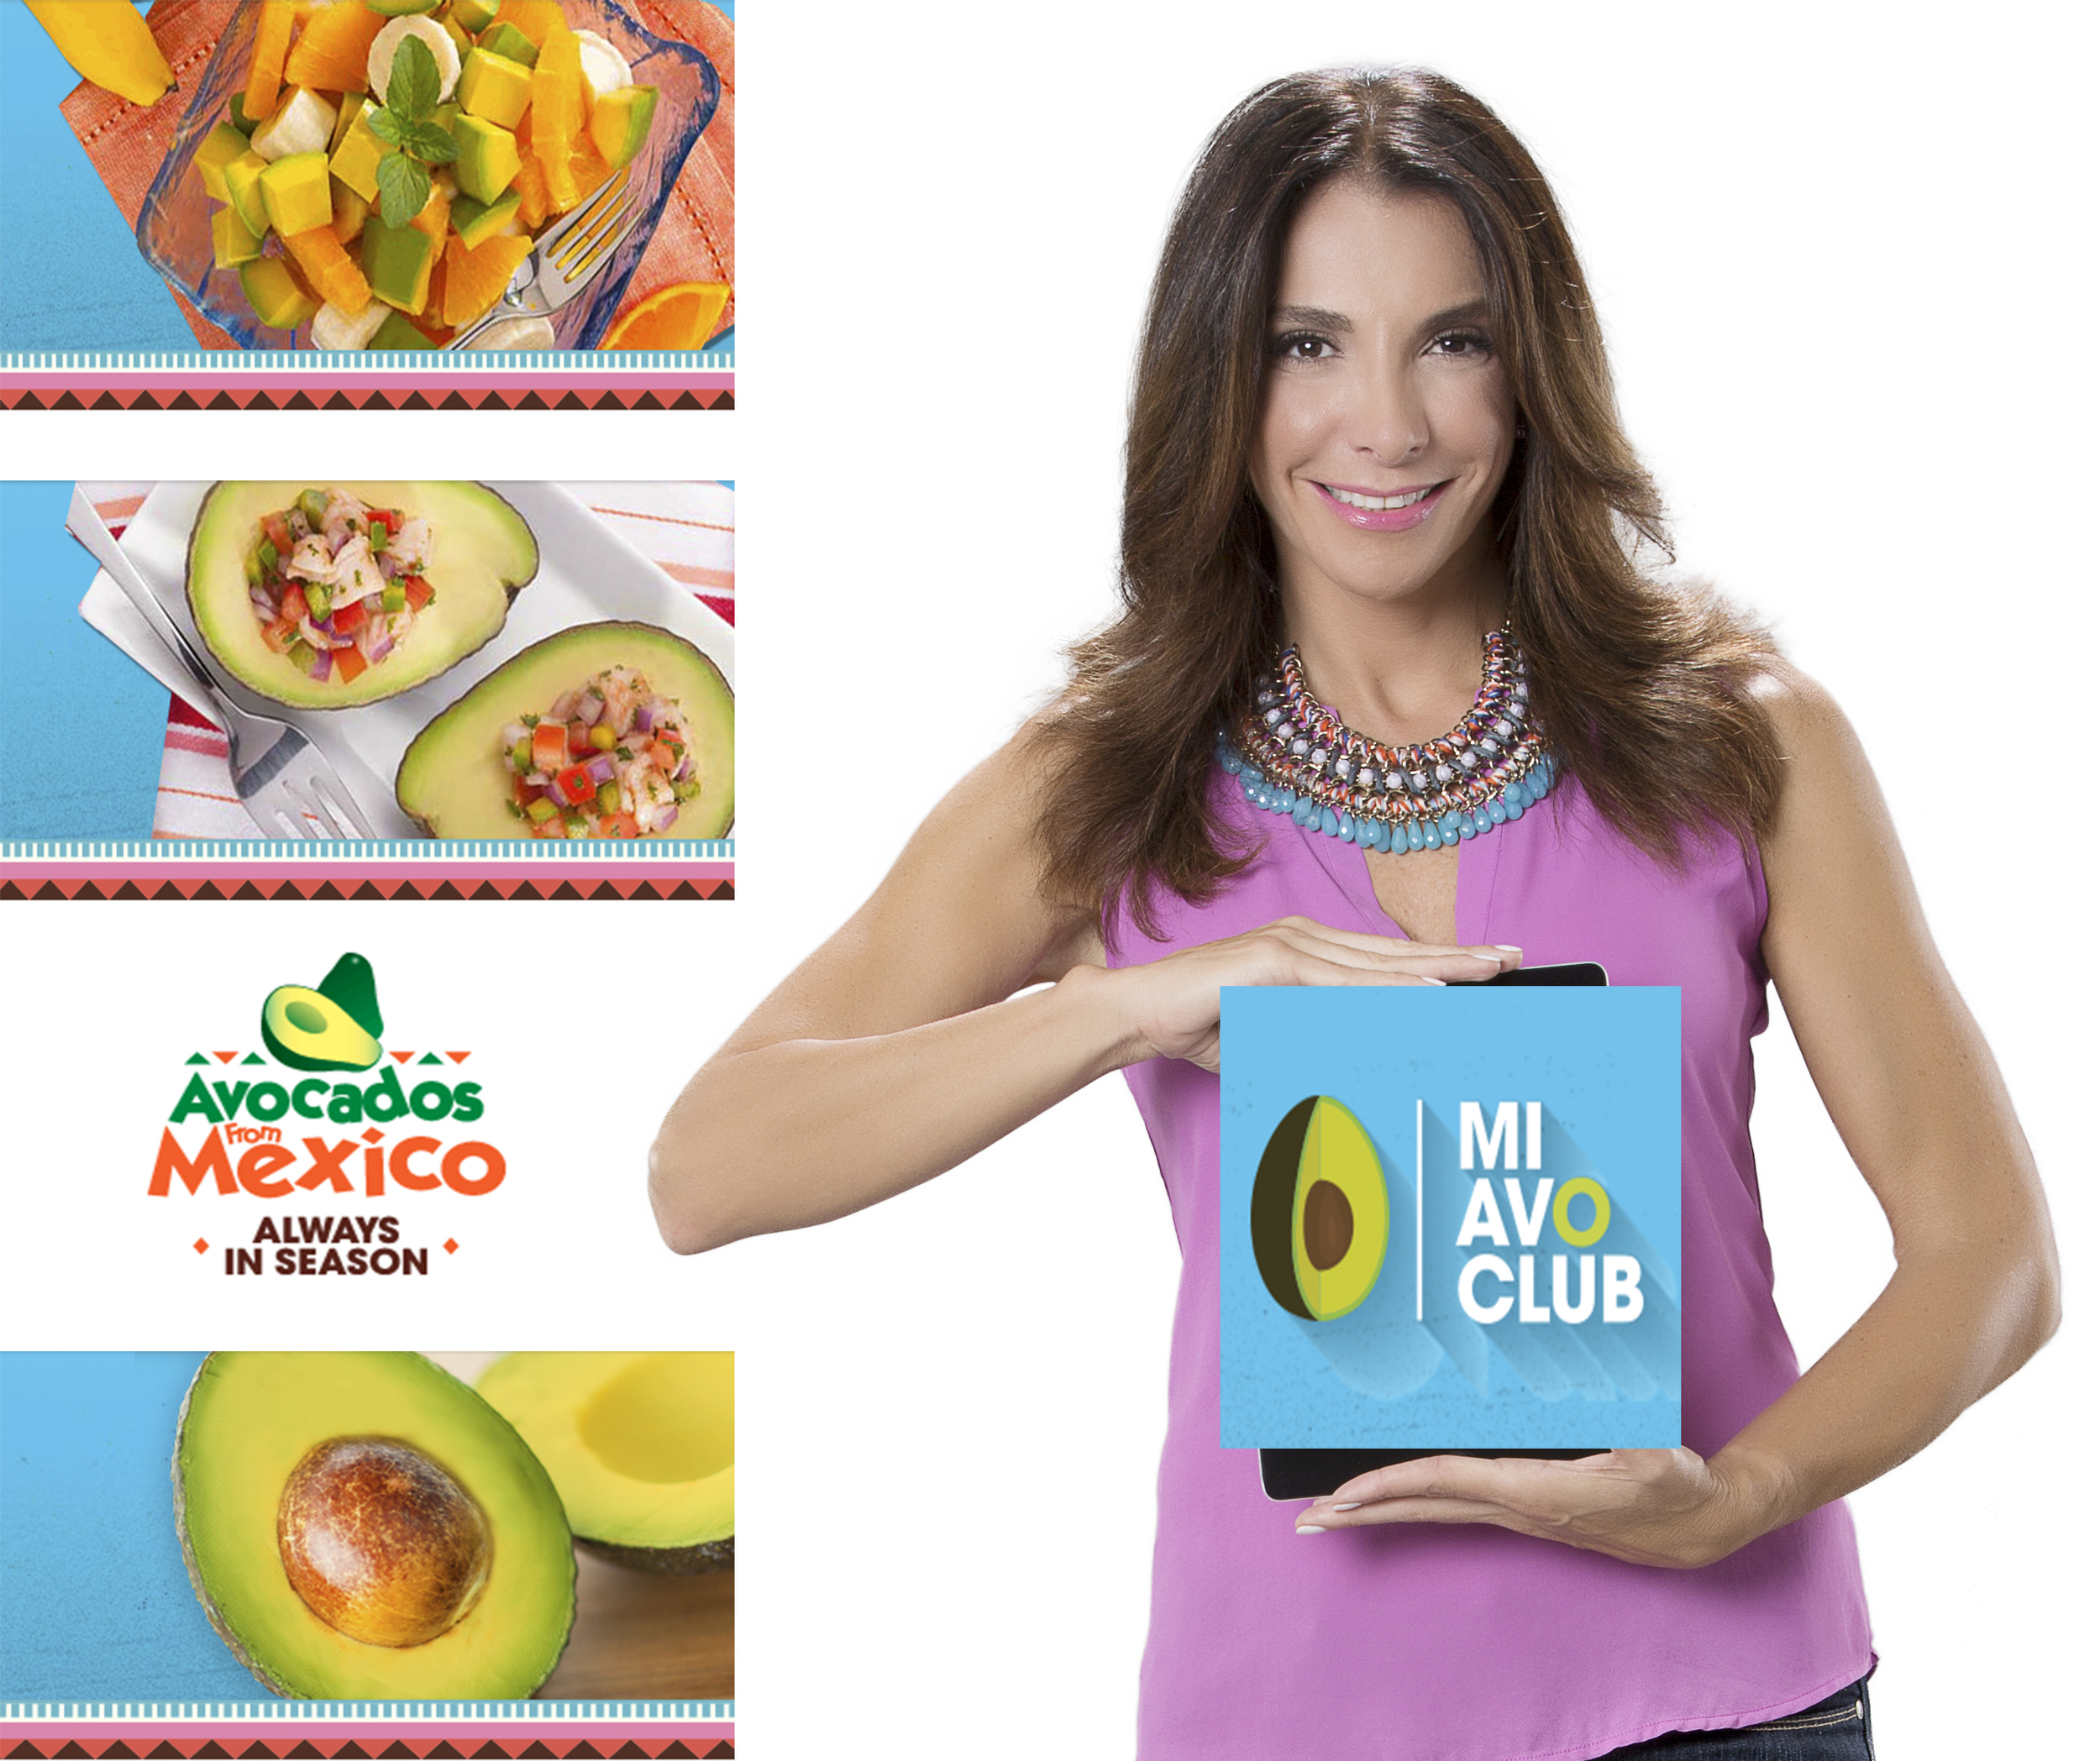 Avocados from Mexico Video Recipes, Maggie Jimenez